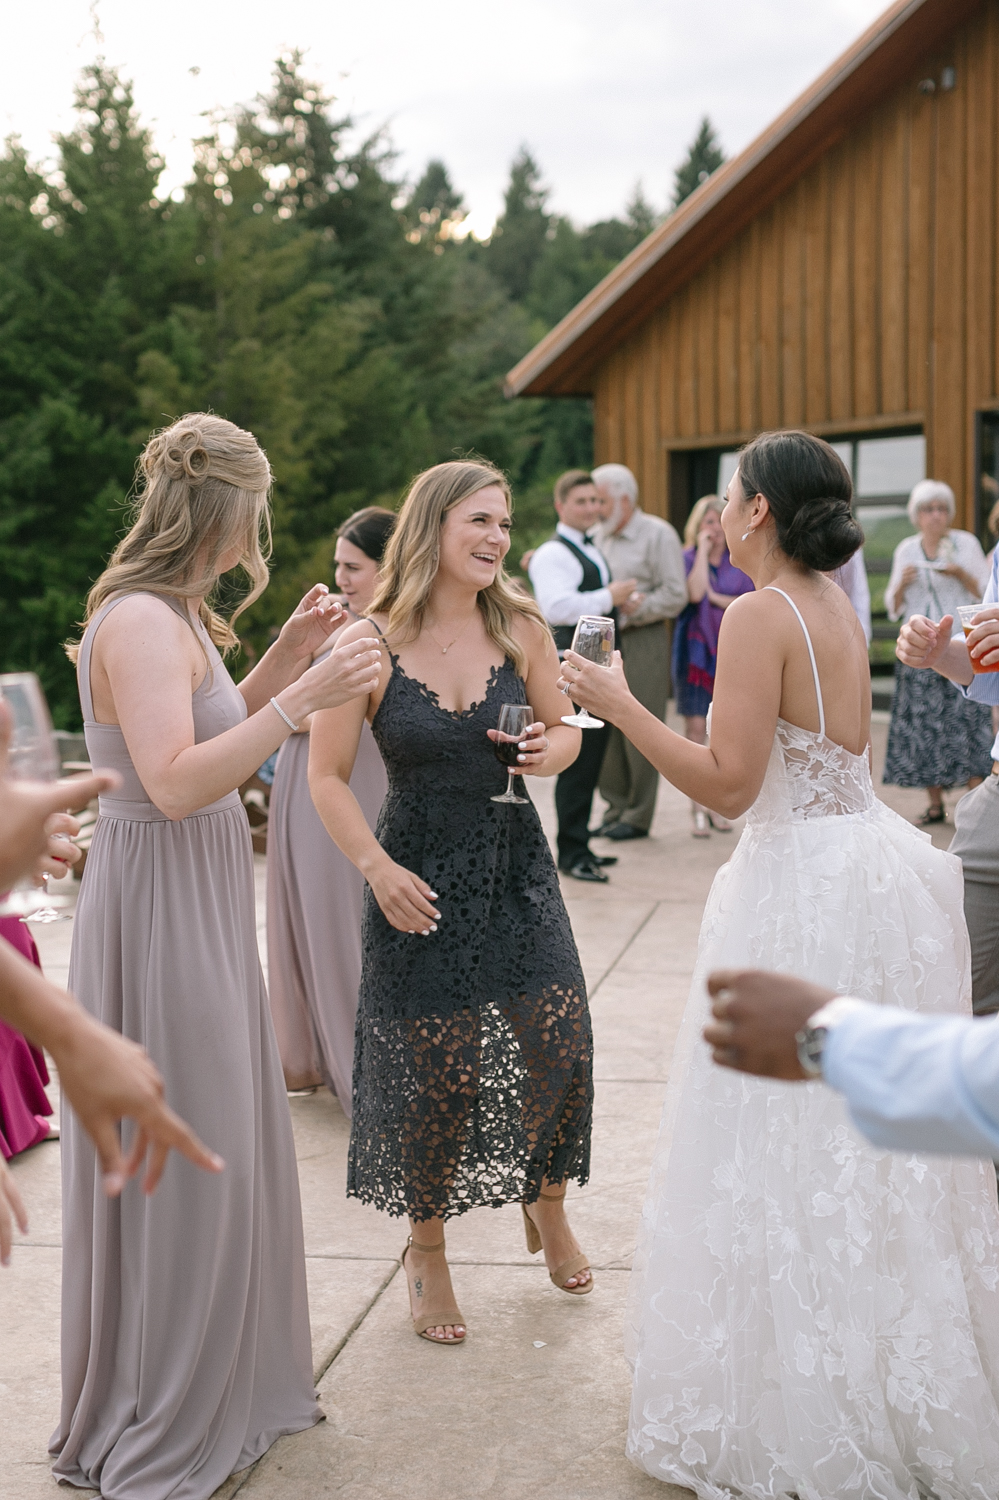 Youngberg Hill Vineyard Wedding in Wine Country Oregon - Corrie Mick Photography-516.jpg